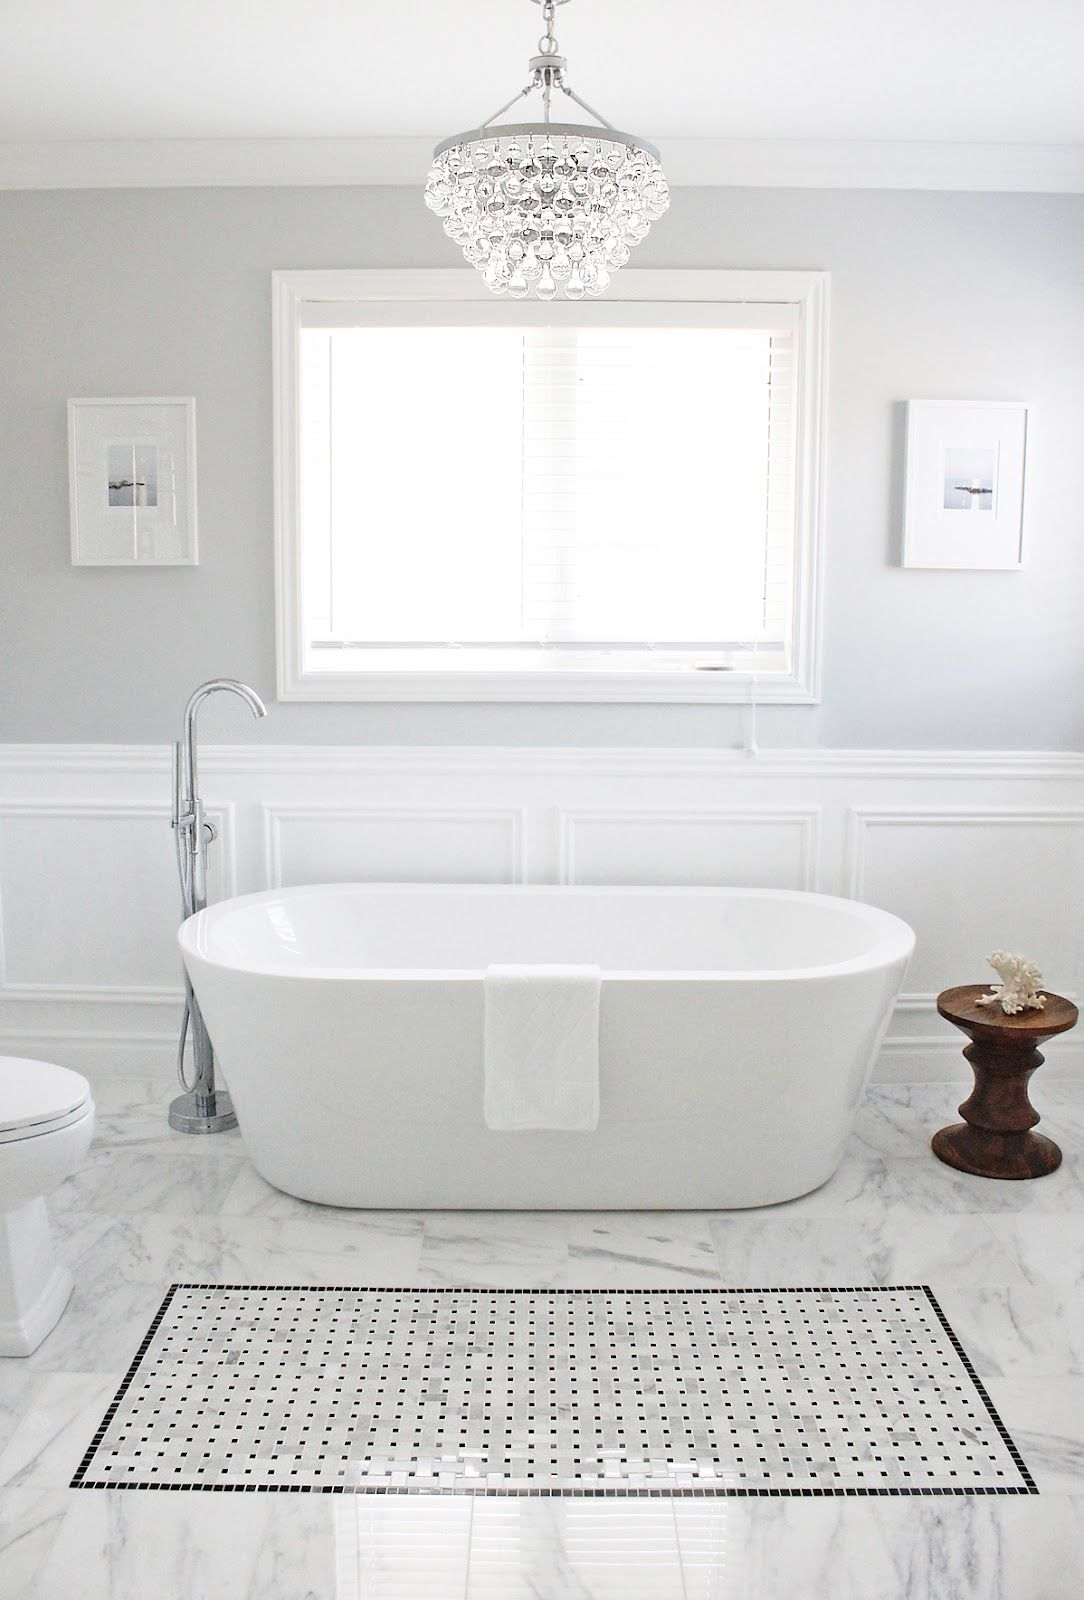 Valspar Polar Star Light Gray Bathroom Paint Color Is Creative - Valspar bathroom paint